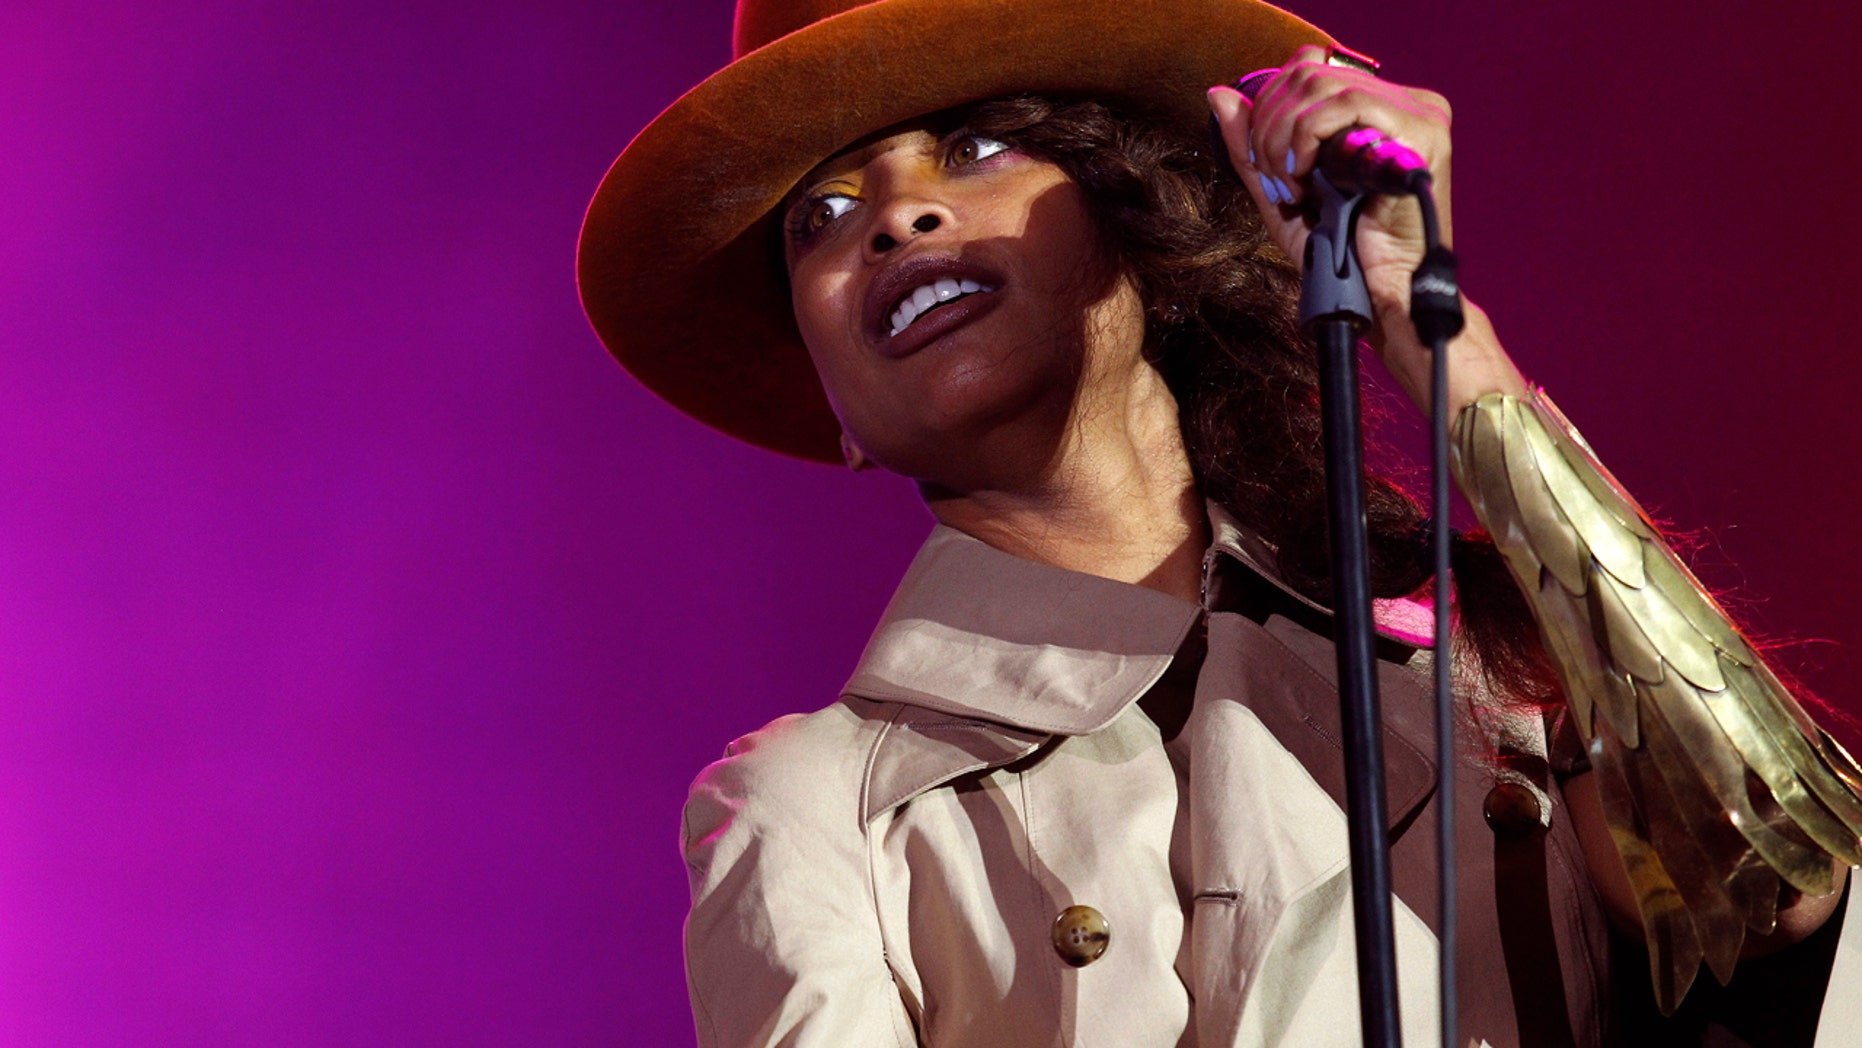 Erykah Badu made shocking statements about Hilter and Bill Cosby in a new interview.